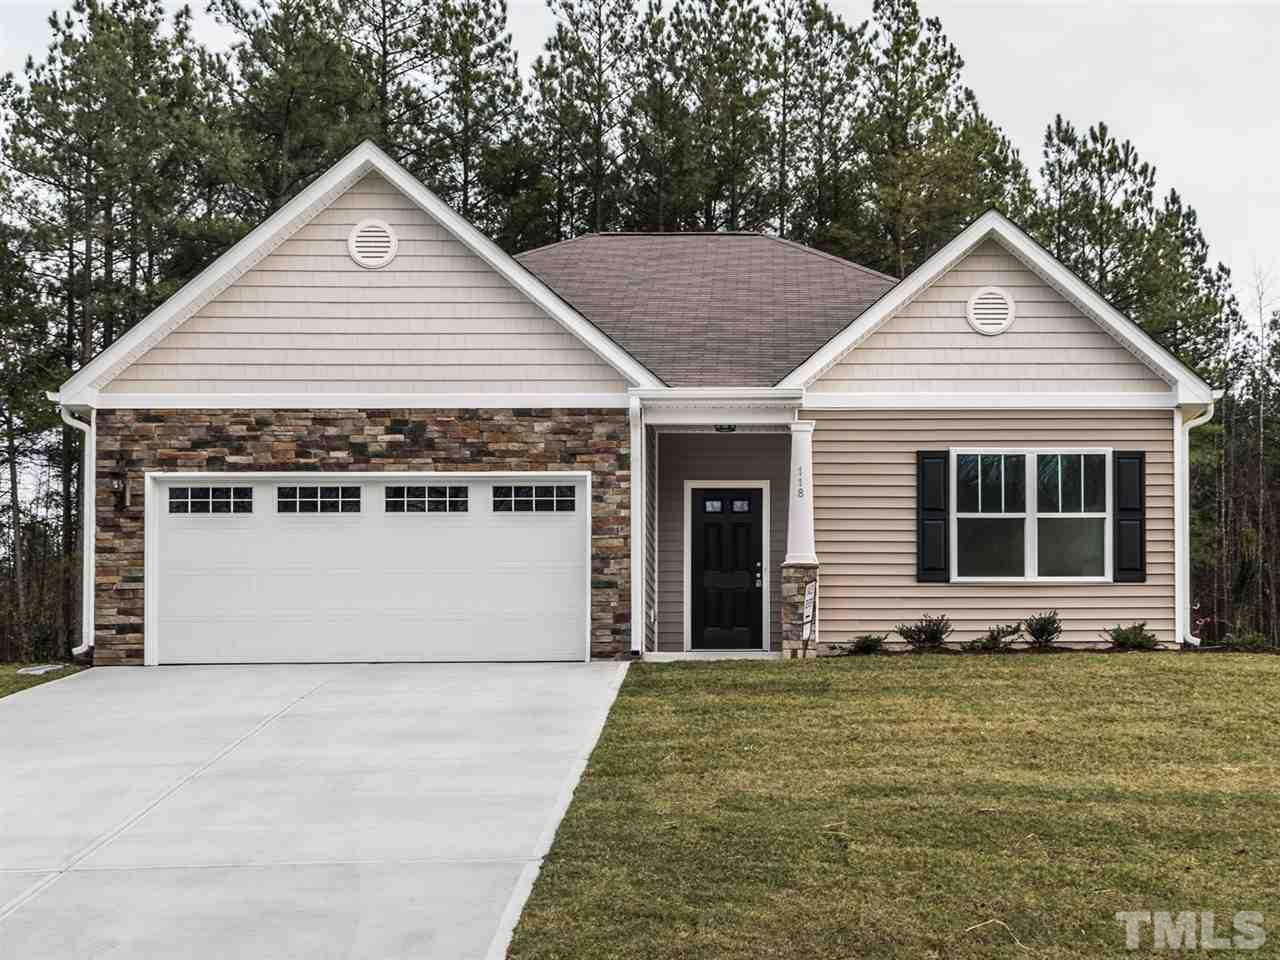 118 Richmond Run (Lot 122), Stem, NC 27581